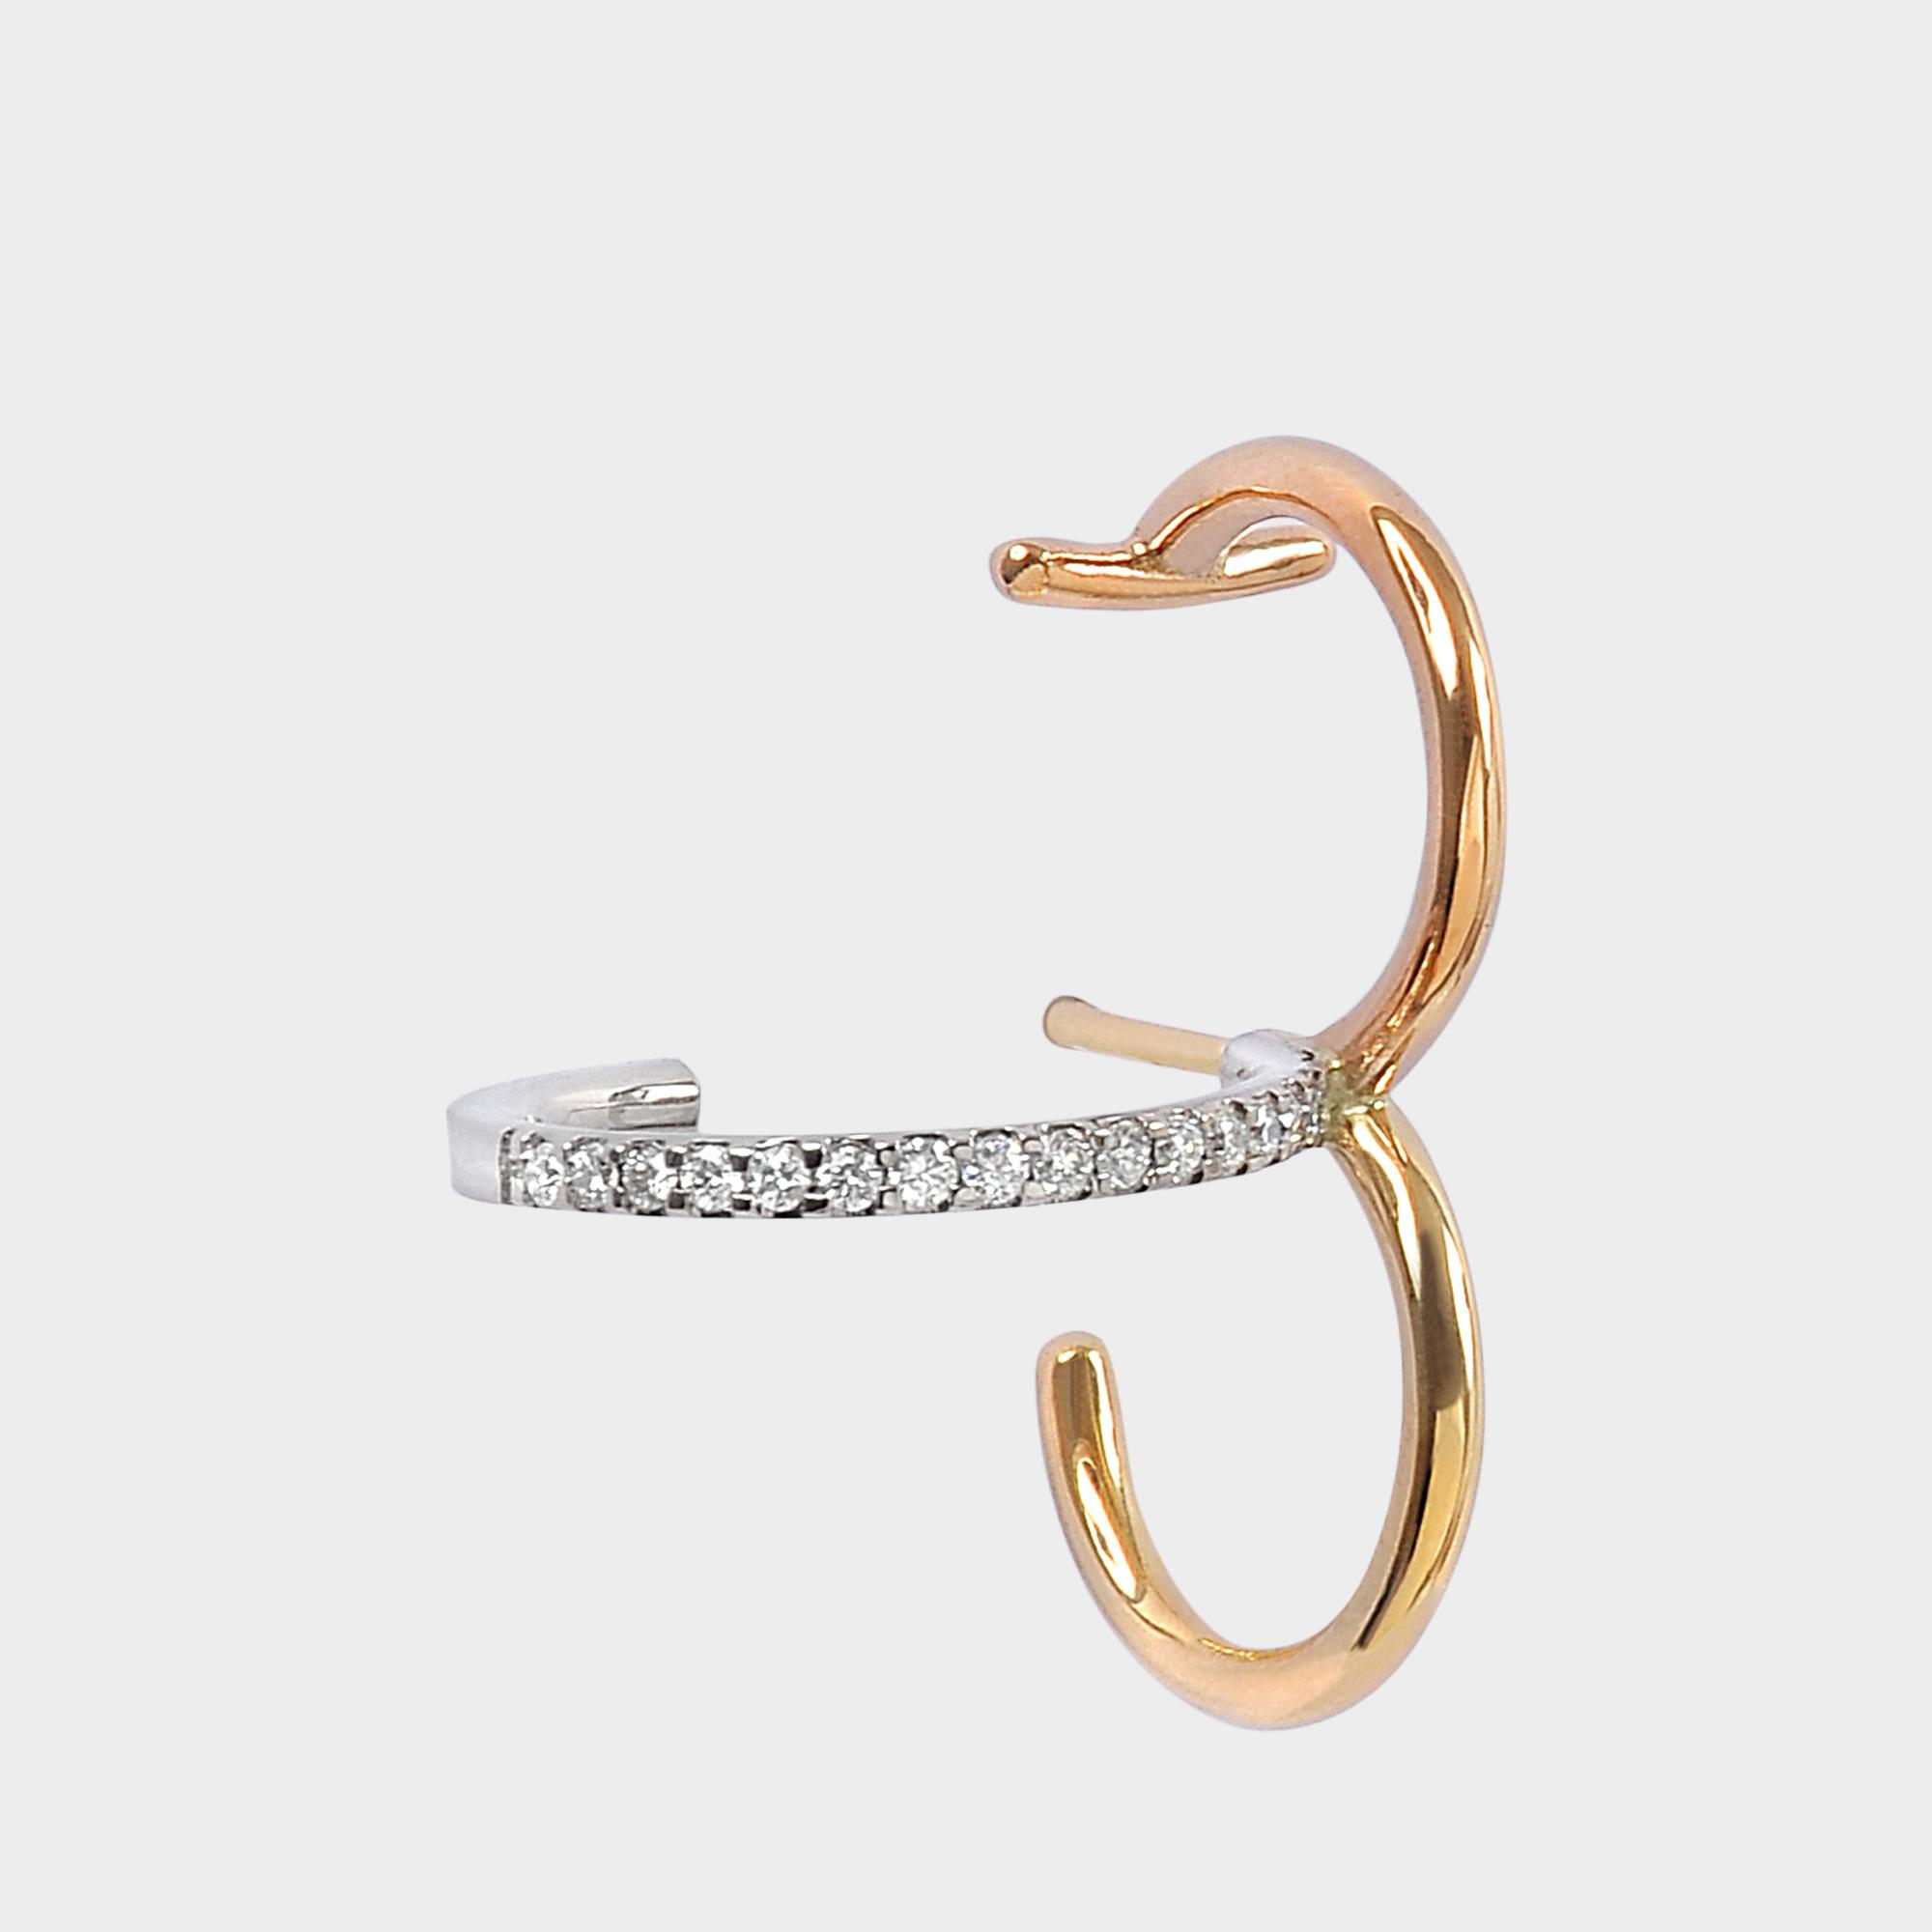 Charlotte Chesnais Saturn S Mono Earring in Yellow and White 18K Gold and Diamonds m4OTd6